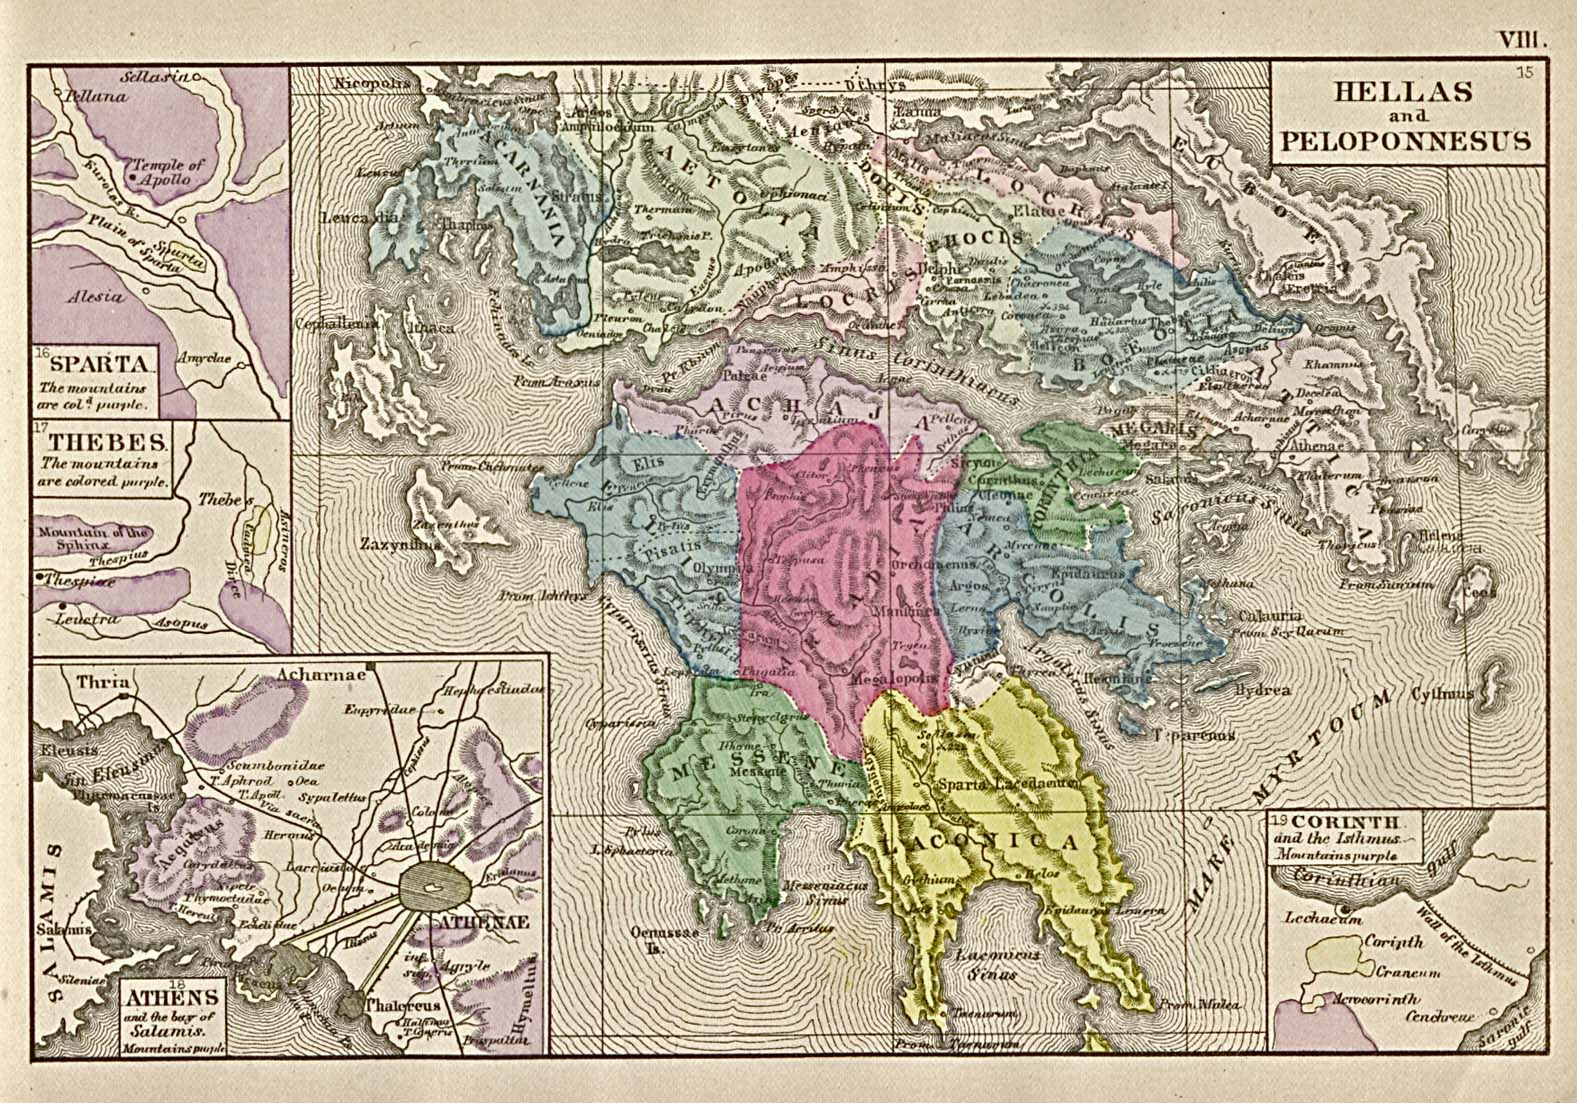 Hellas and Peloponnesus Map